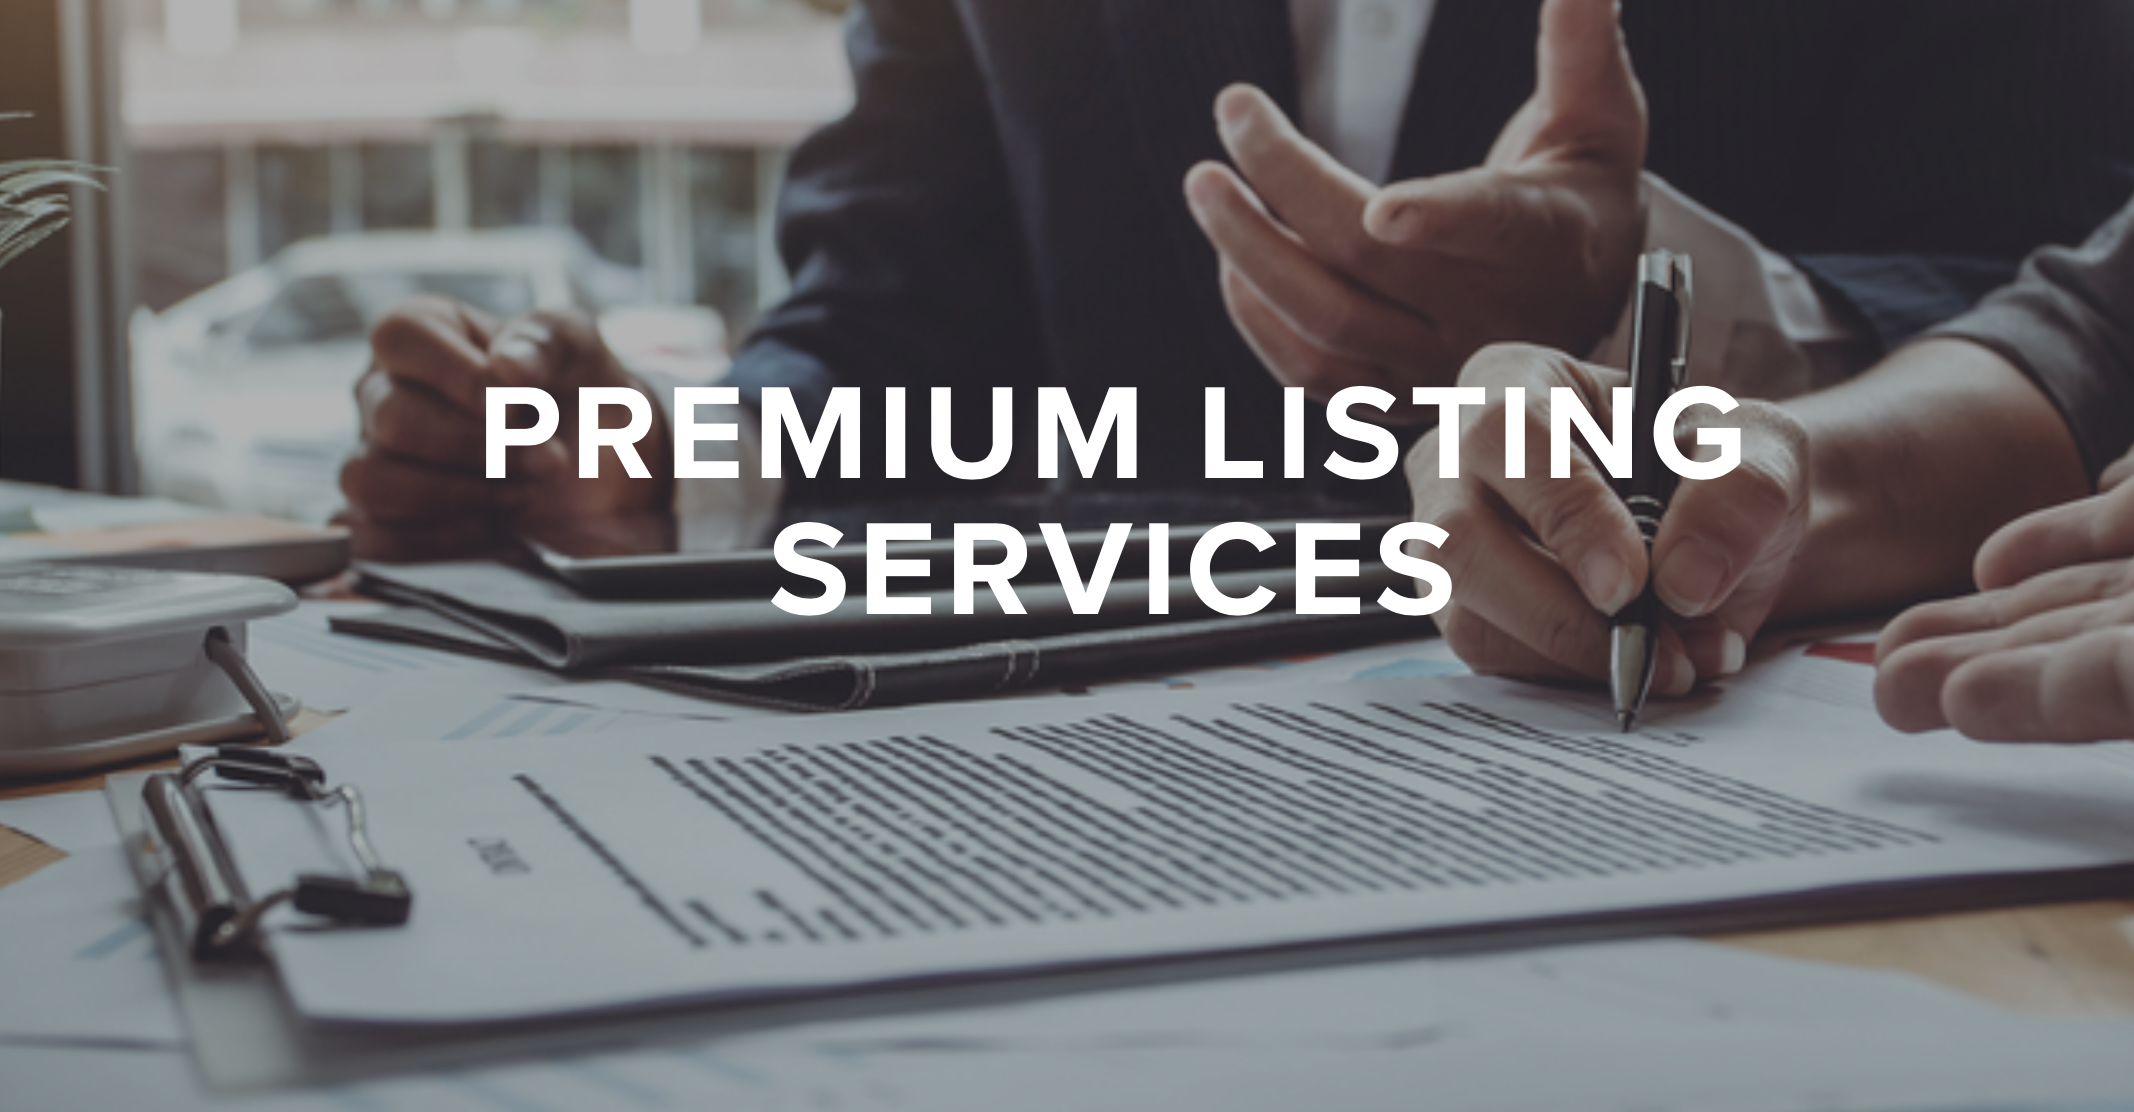 Listing Services Site - Use this to share with your clients what you'll do differently than all the rest.